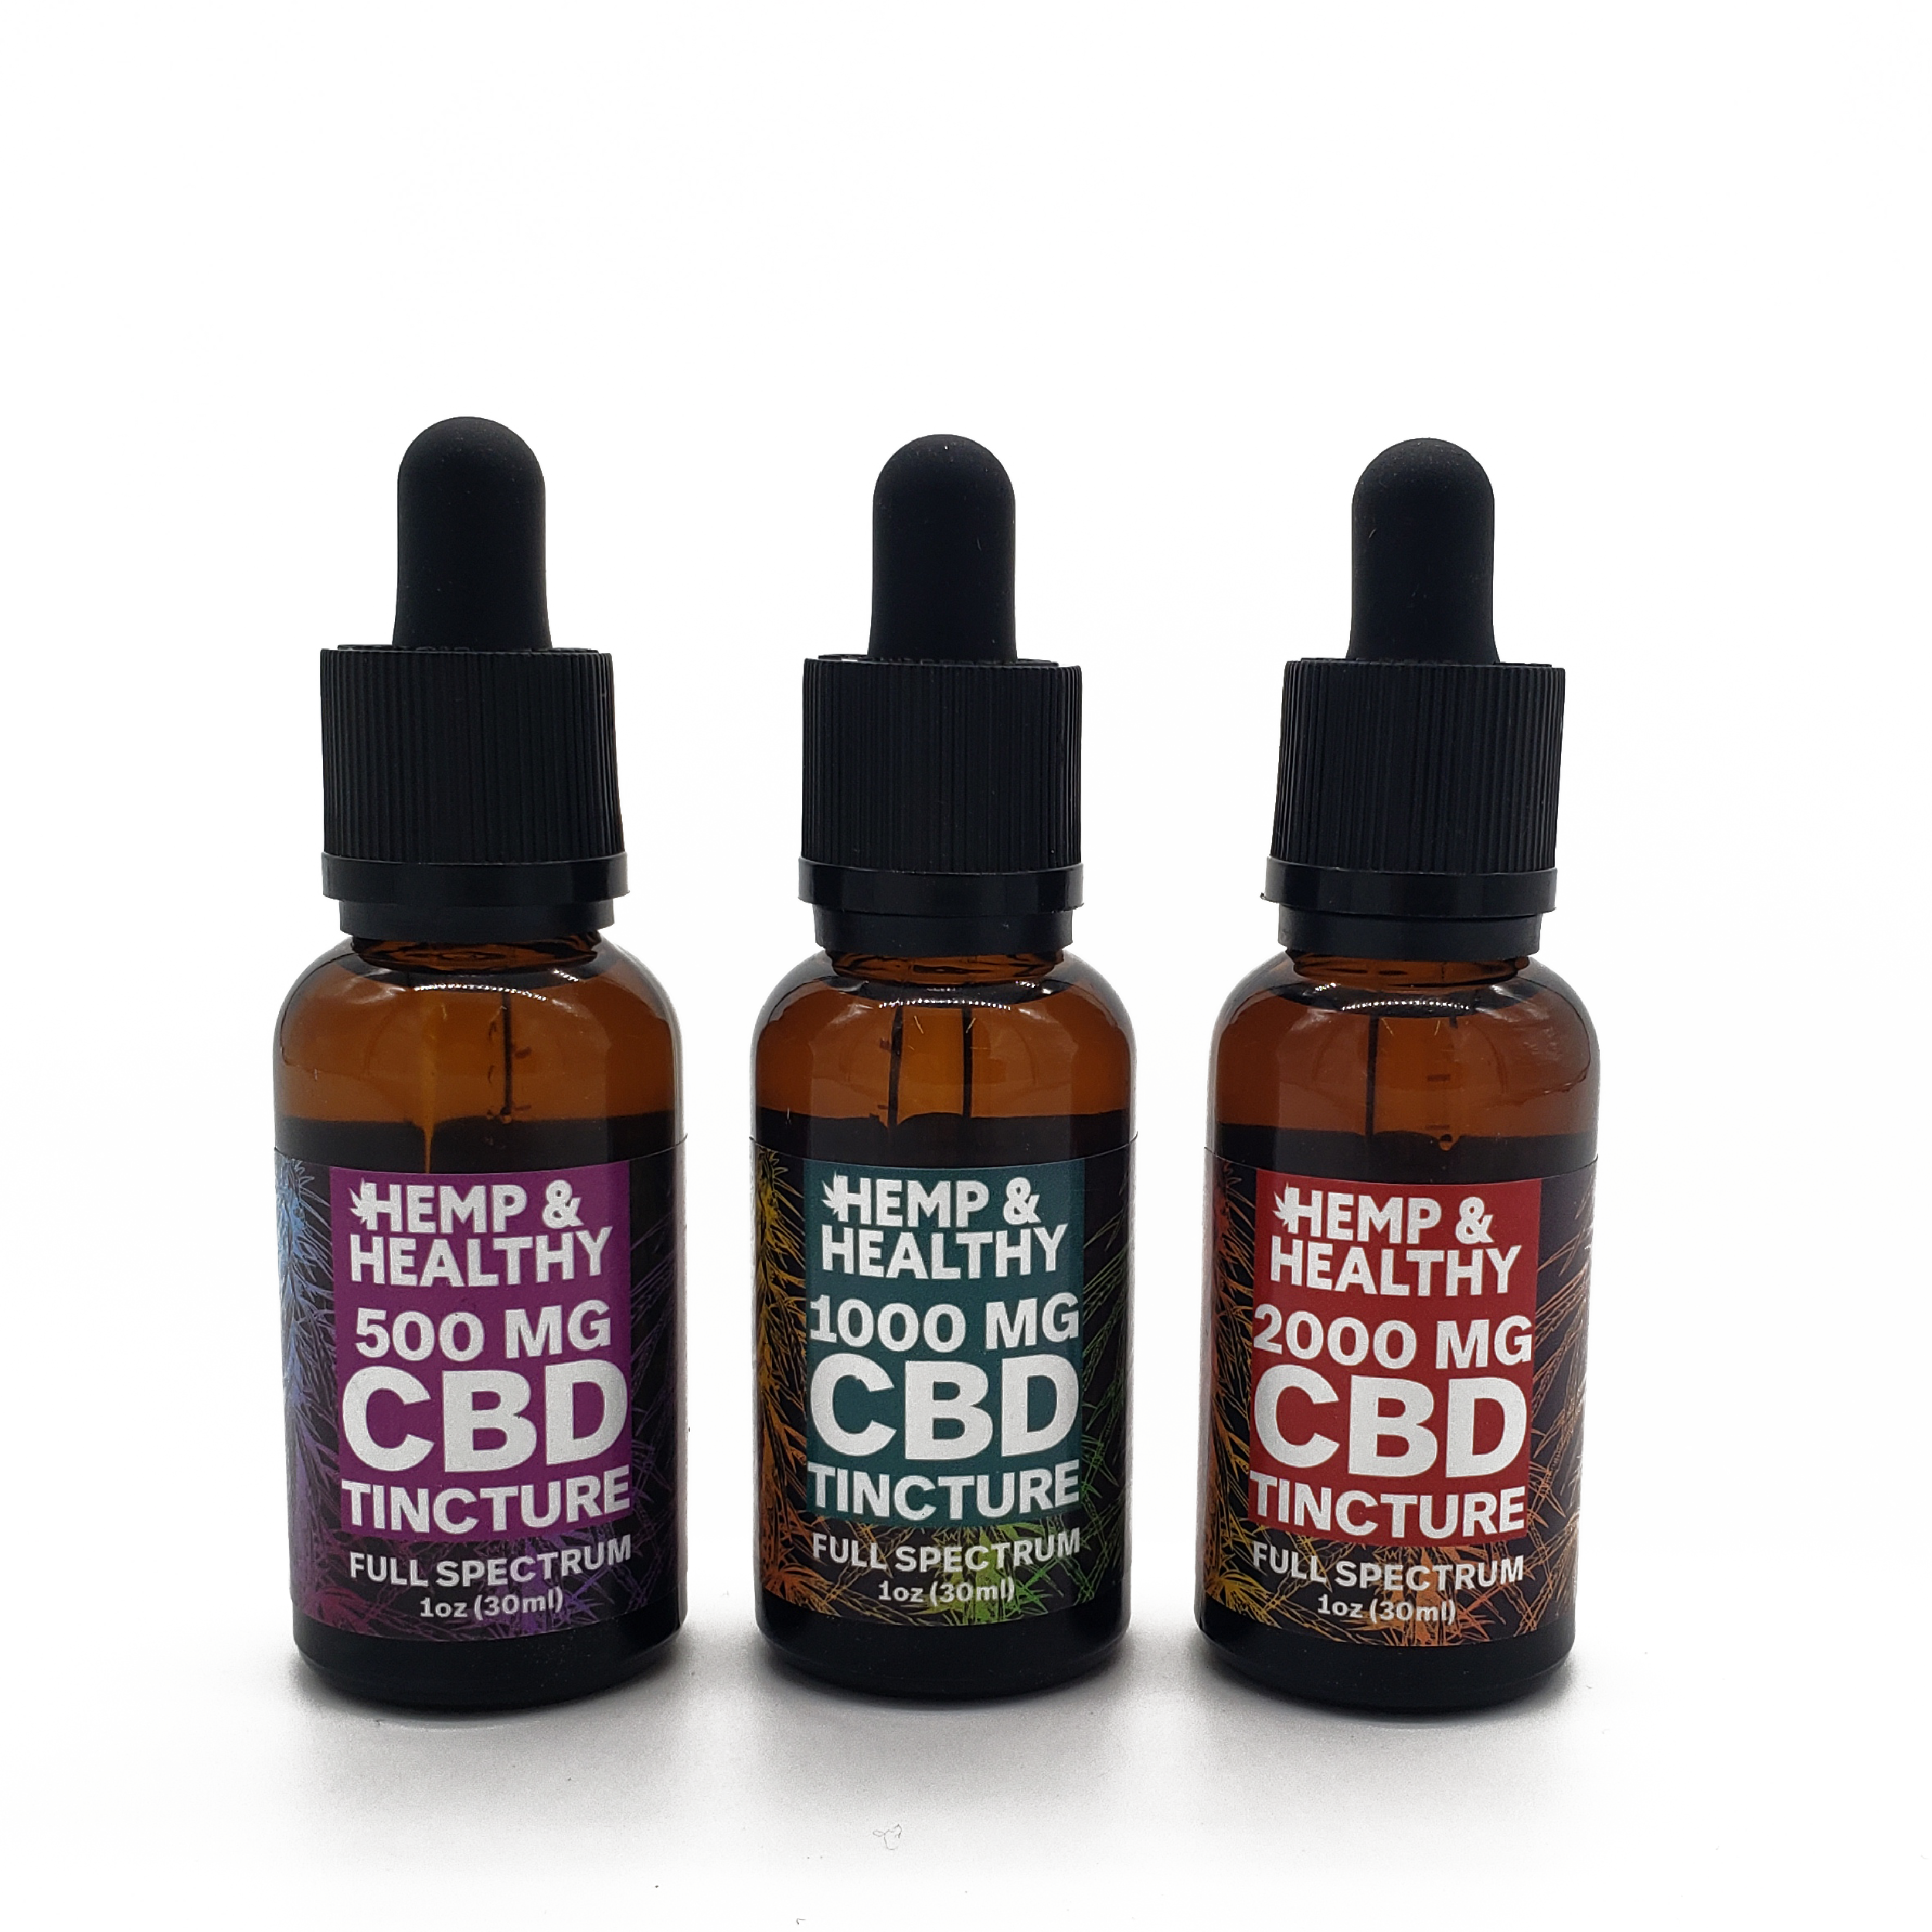 hemp oil cbd tincture pain relief sleep anxiety insomnia arthritis inflammation